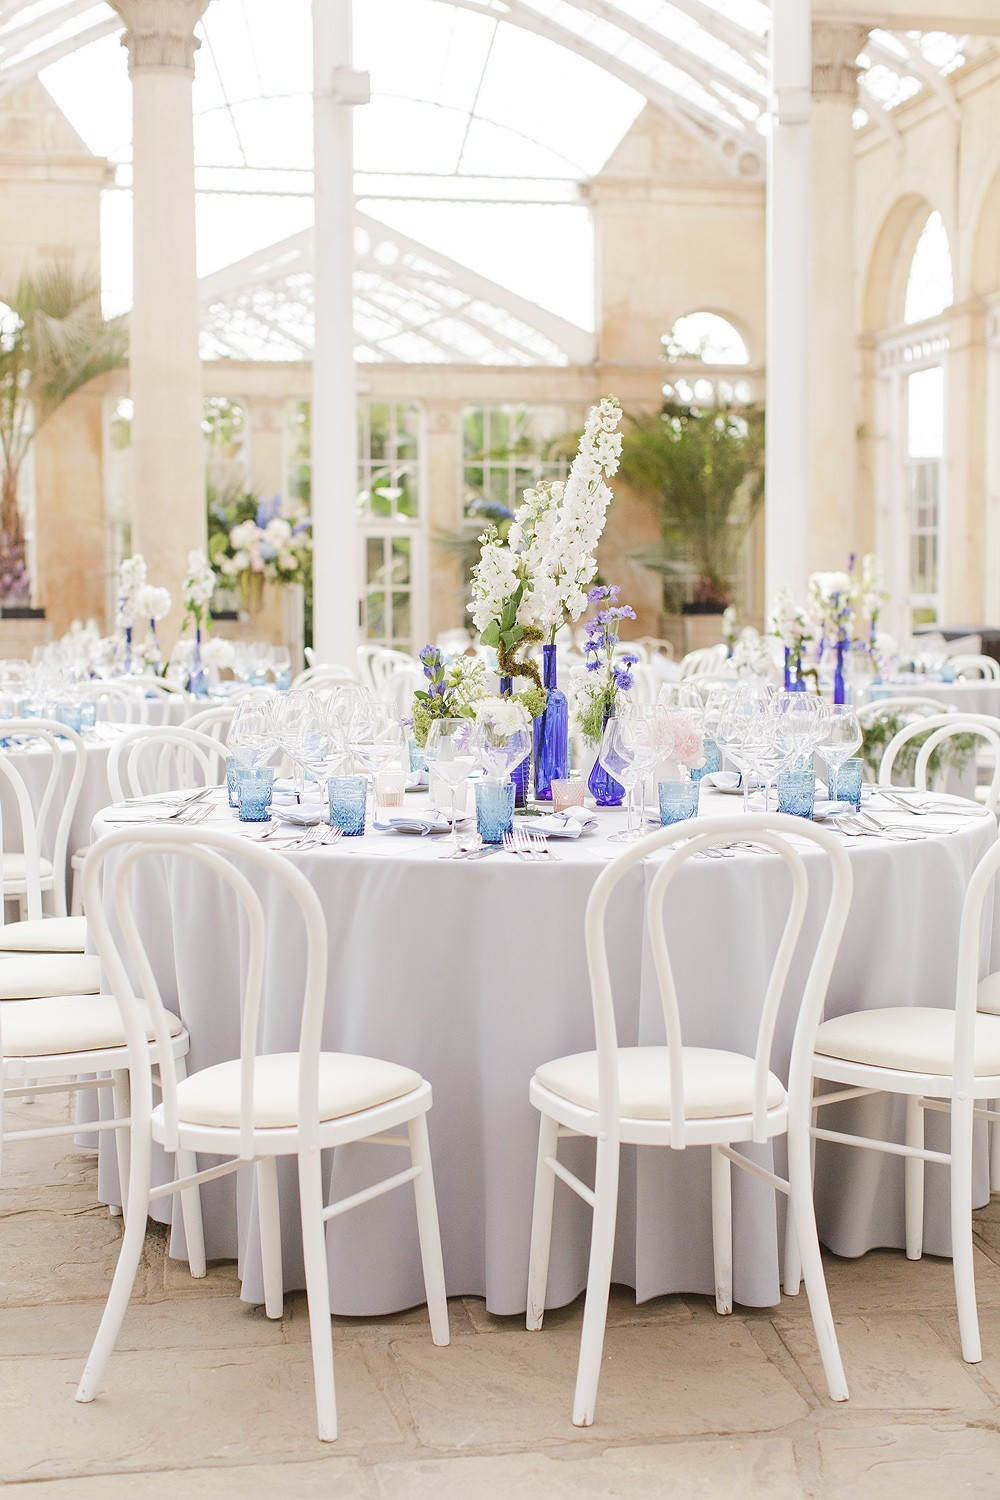 A Botanical Wedding in Syon Park | Bespoke Weddings by Create